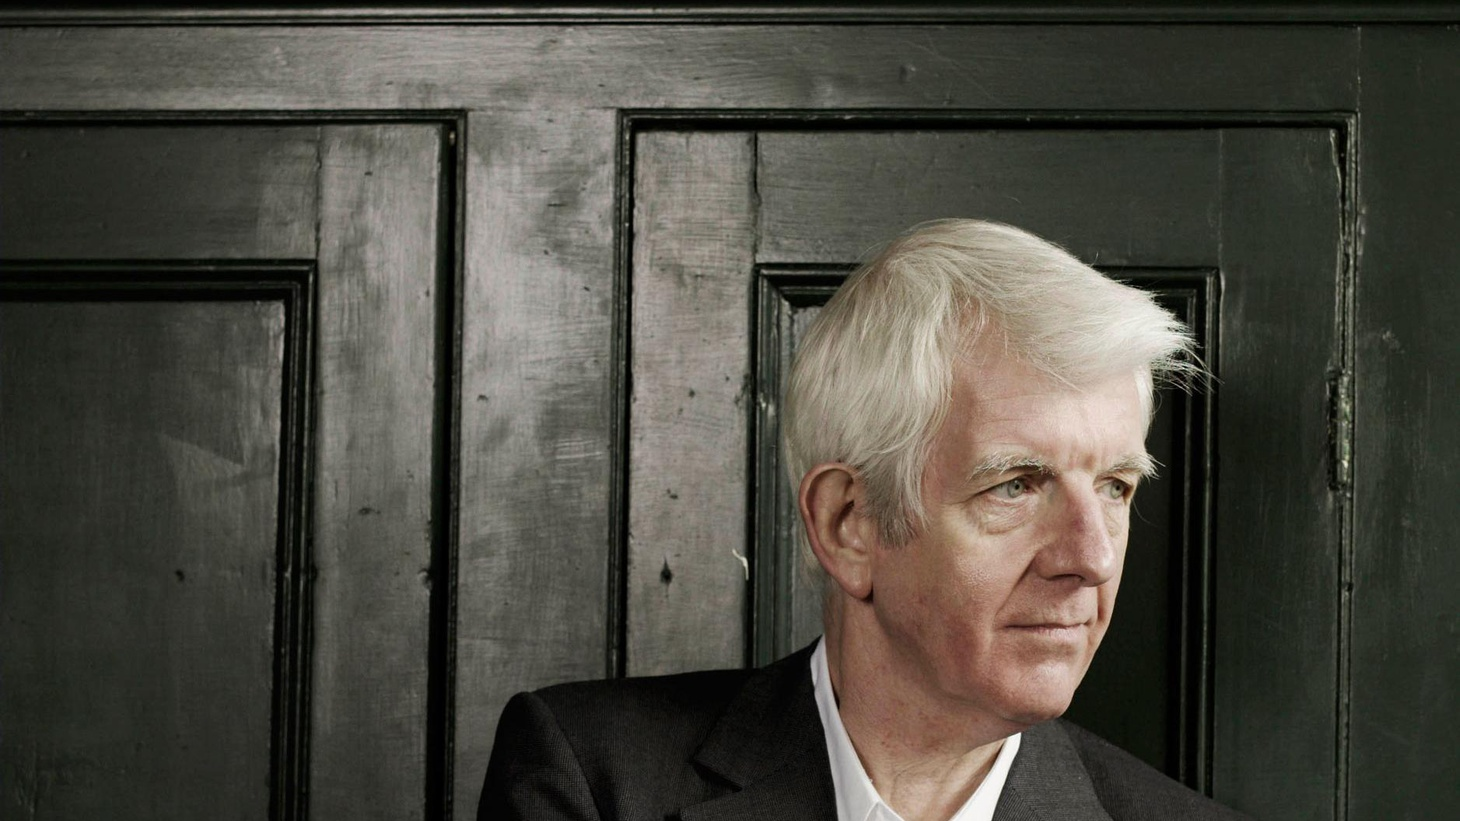 Co-founder and in-house producer at Stiff Records, Nick Lowe helped usher in British punk and New Wave in the 70's...